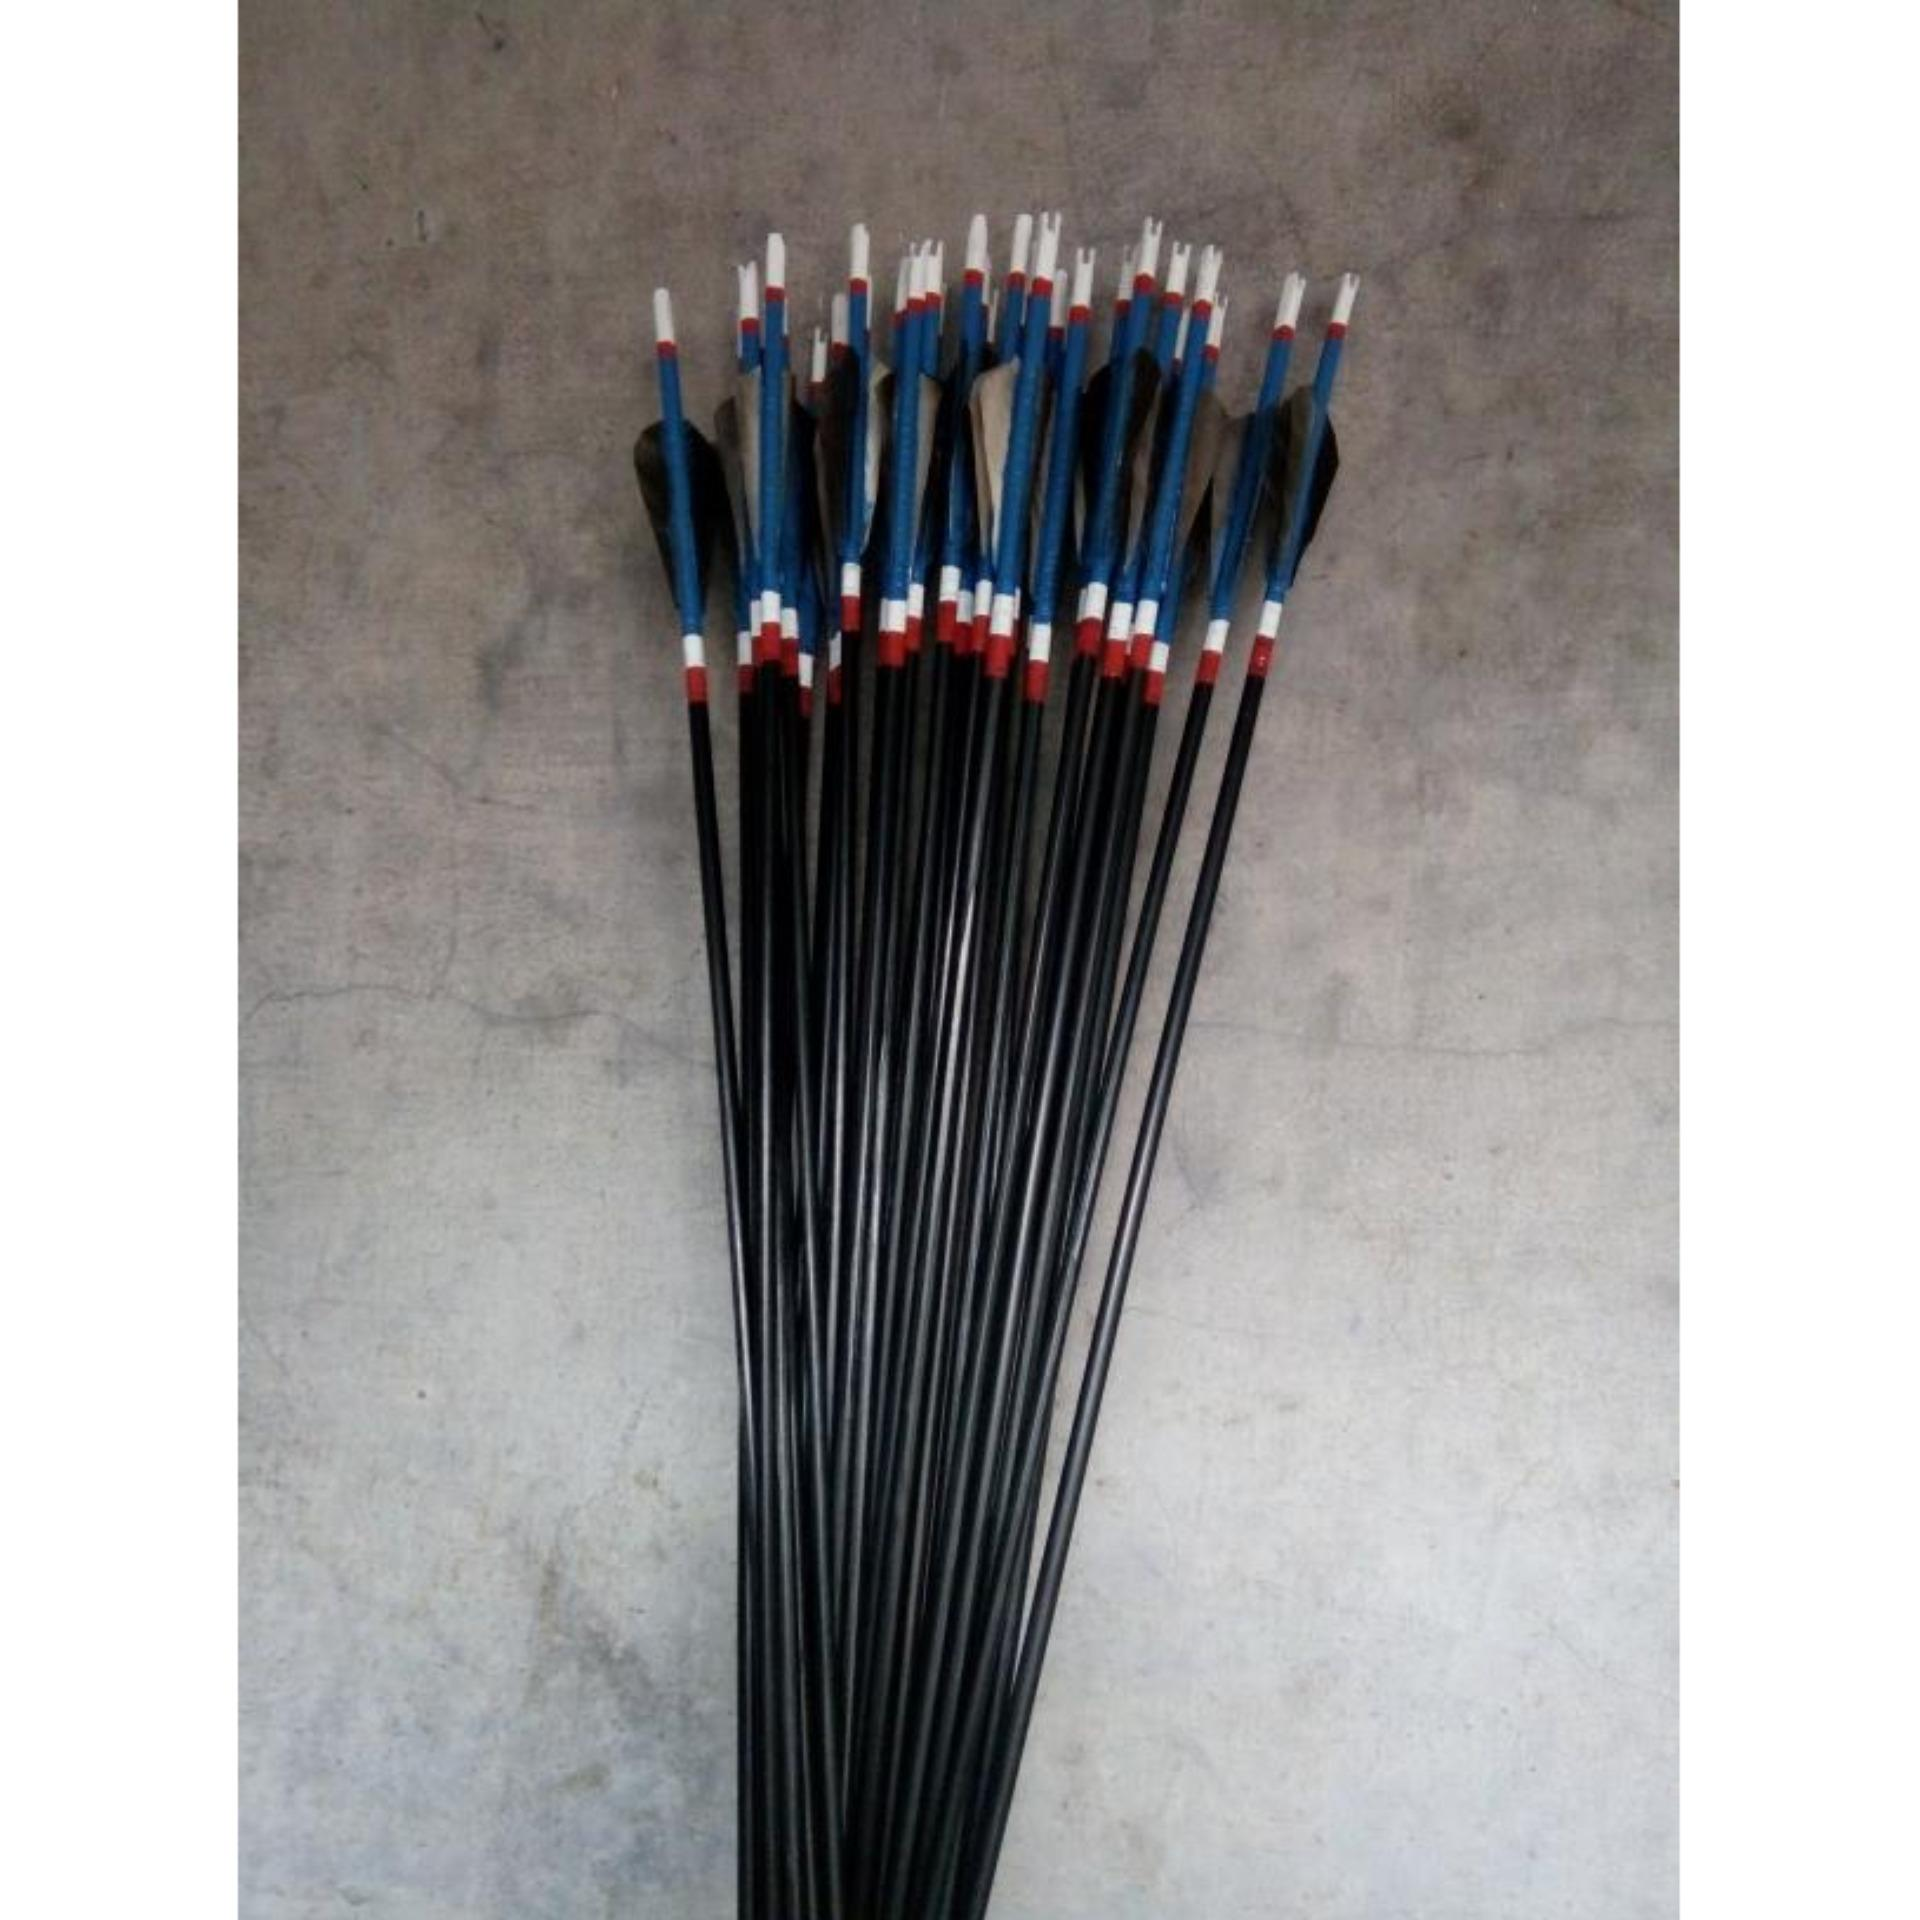 Arrow Anak Panah Bahan Kayu Ramin Fletching Vanes Mata Tajam Lusinan Bare Shaft Fiber 6mm Sp1000 Merah Tanpa Flash Sale